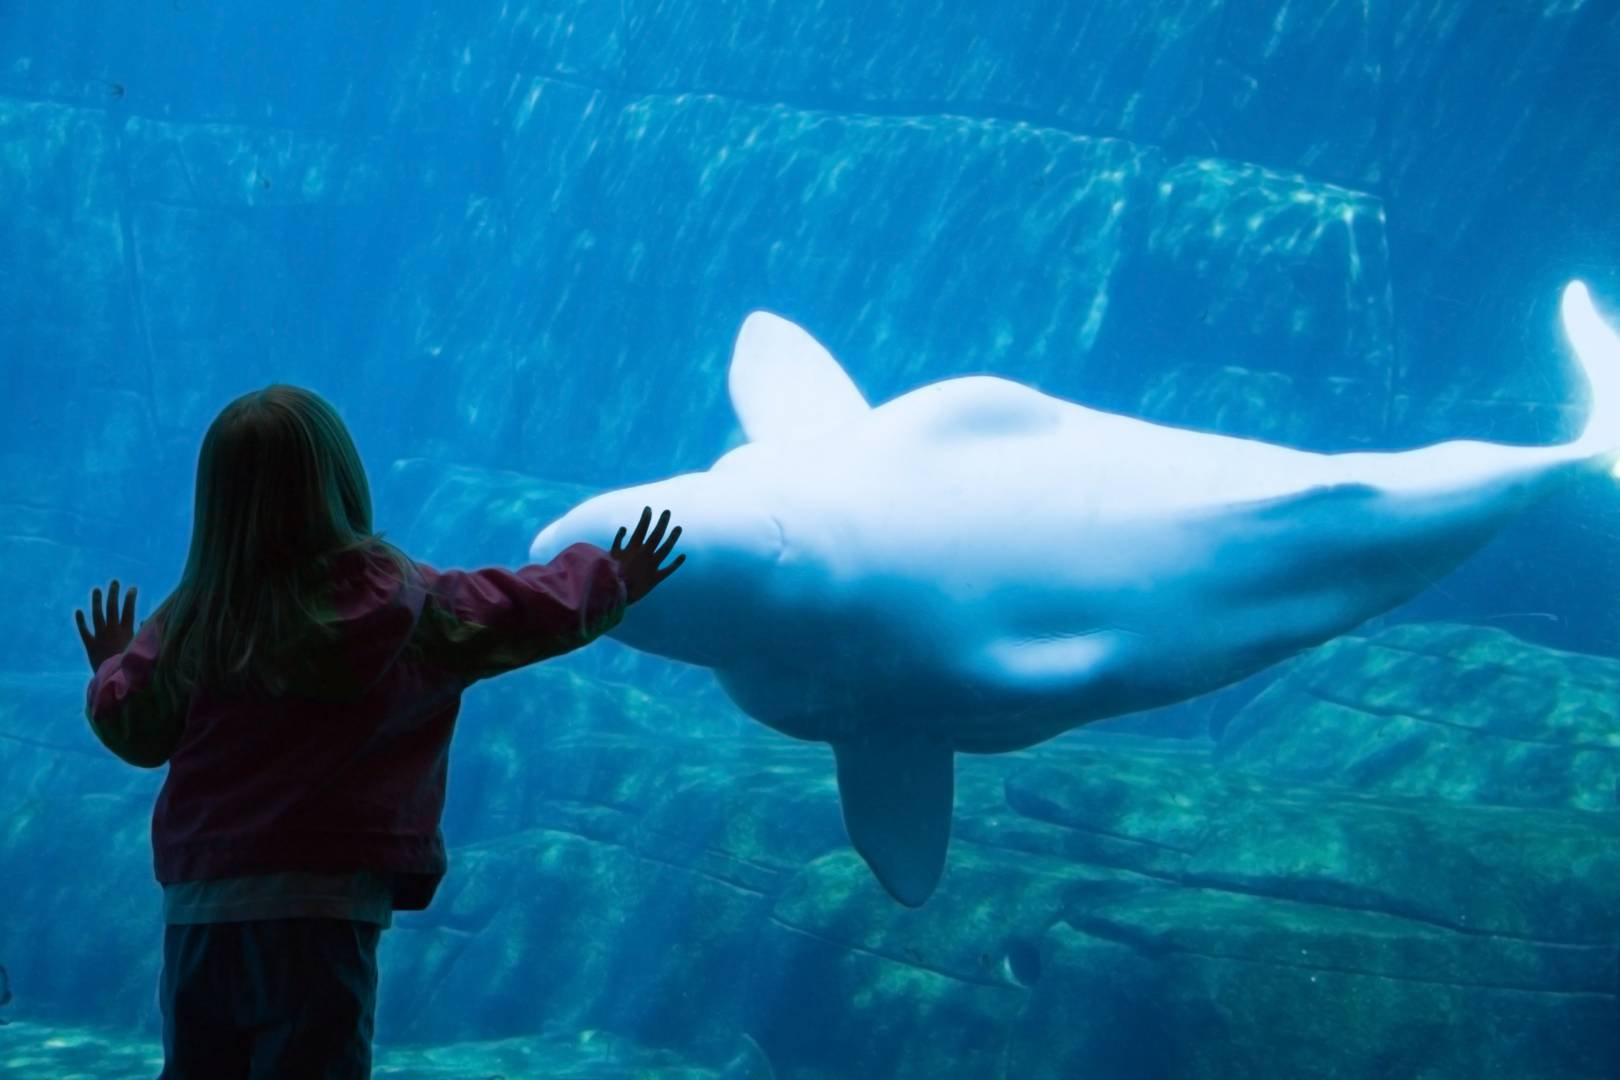 Fish aquarium vancouver - Vancouver Aquarium Bucks National Trend By Keeping Whales And Dolphins Georgia Straight Vancouver S News Entertainment Weekly